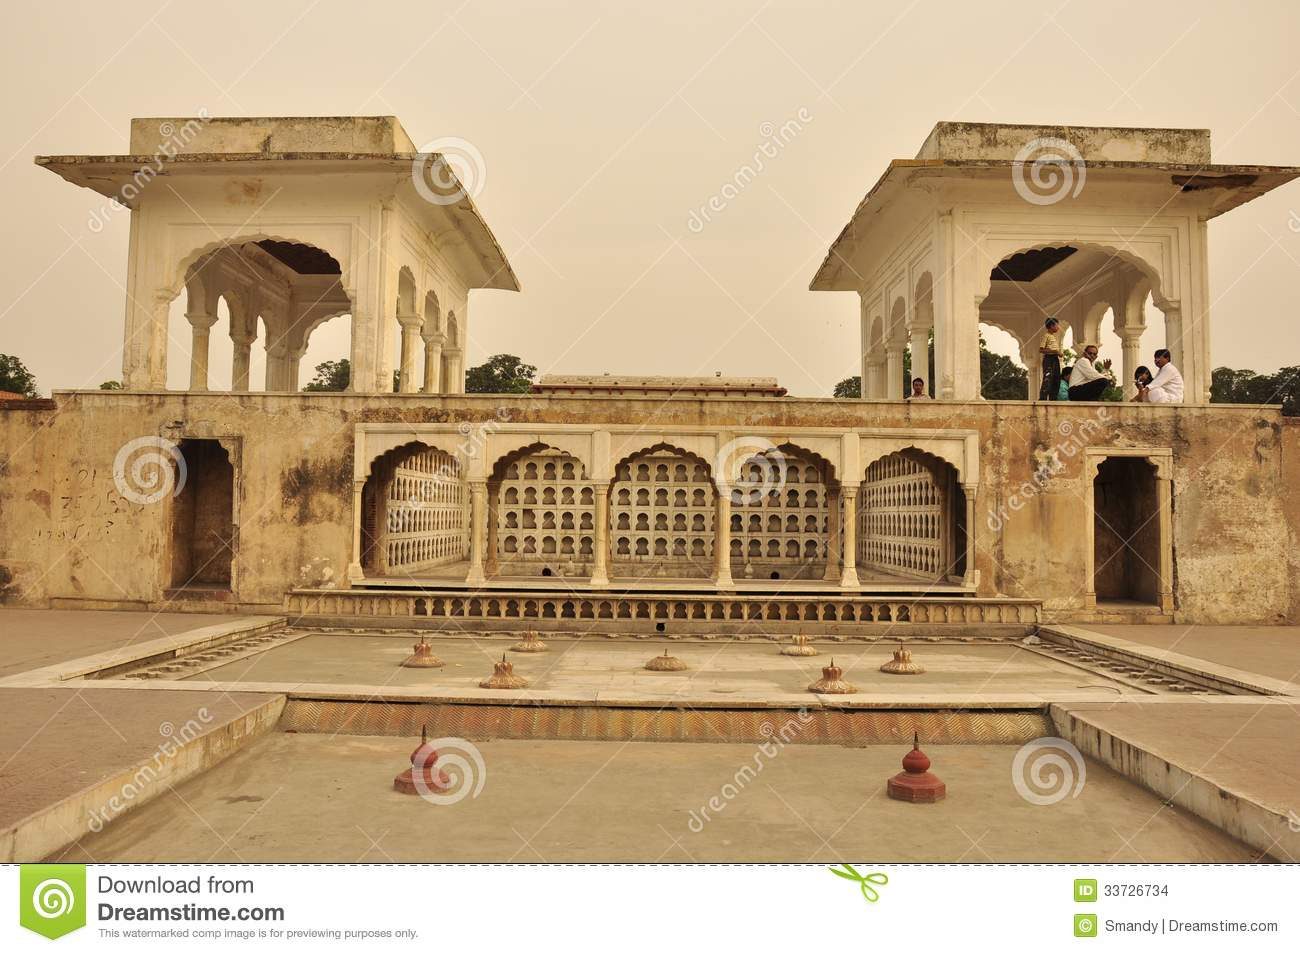 Terrace in shalimar gardens at sunset pakistan editorial for Terrace garden meaning